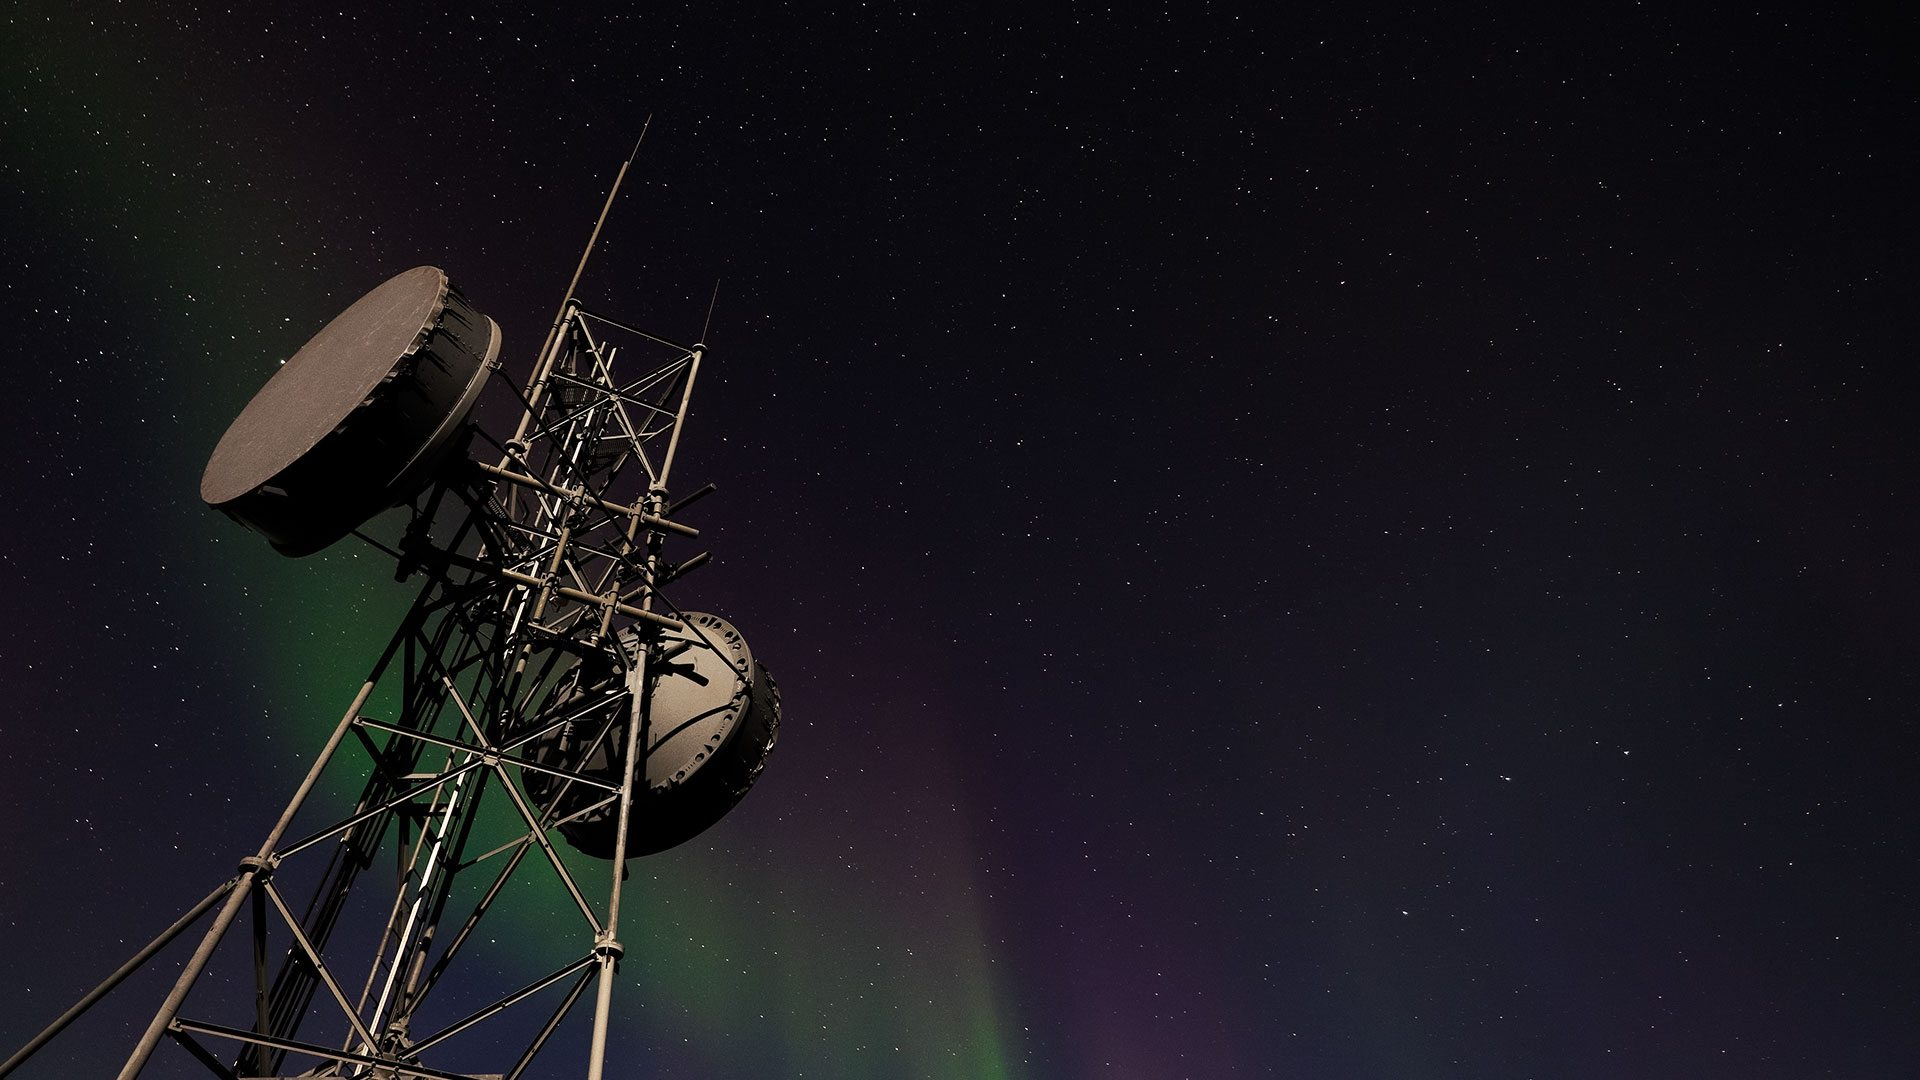 Aurora Borealis with Microwave Tower, Tombstone NP, Canada